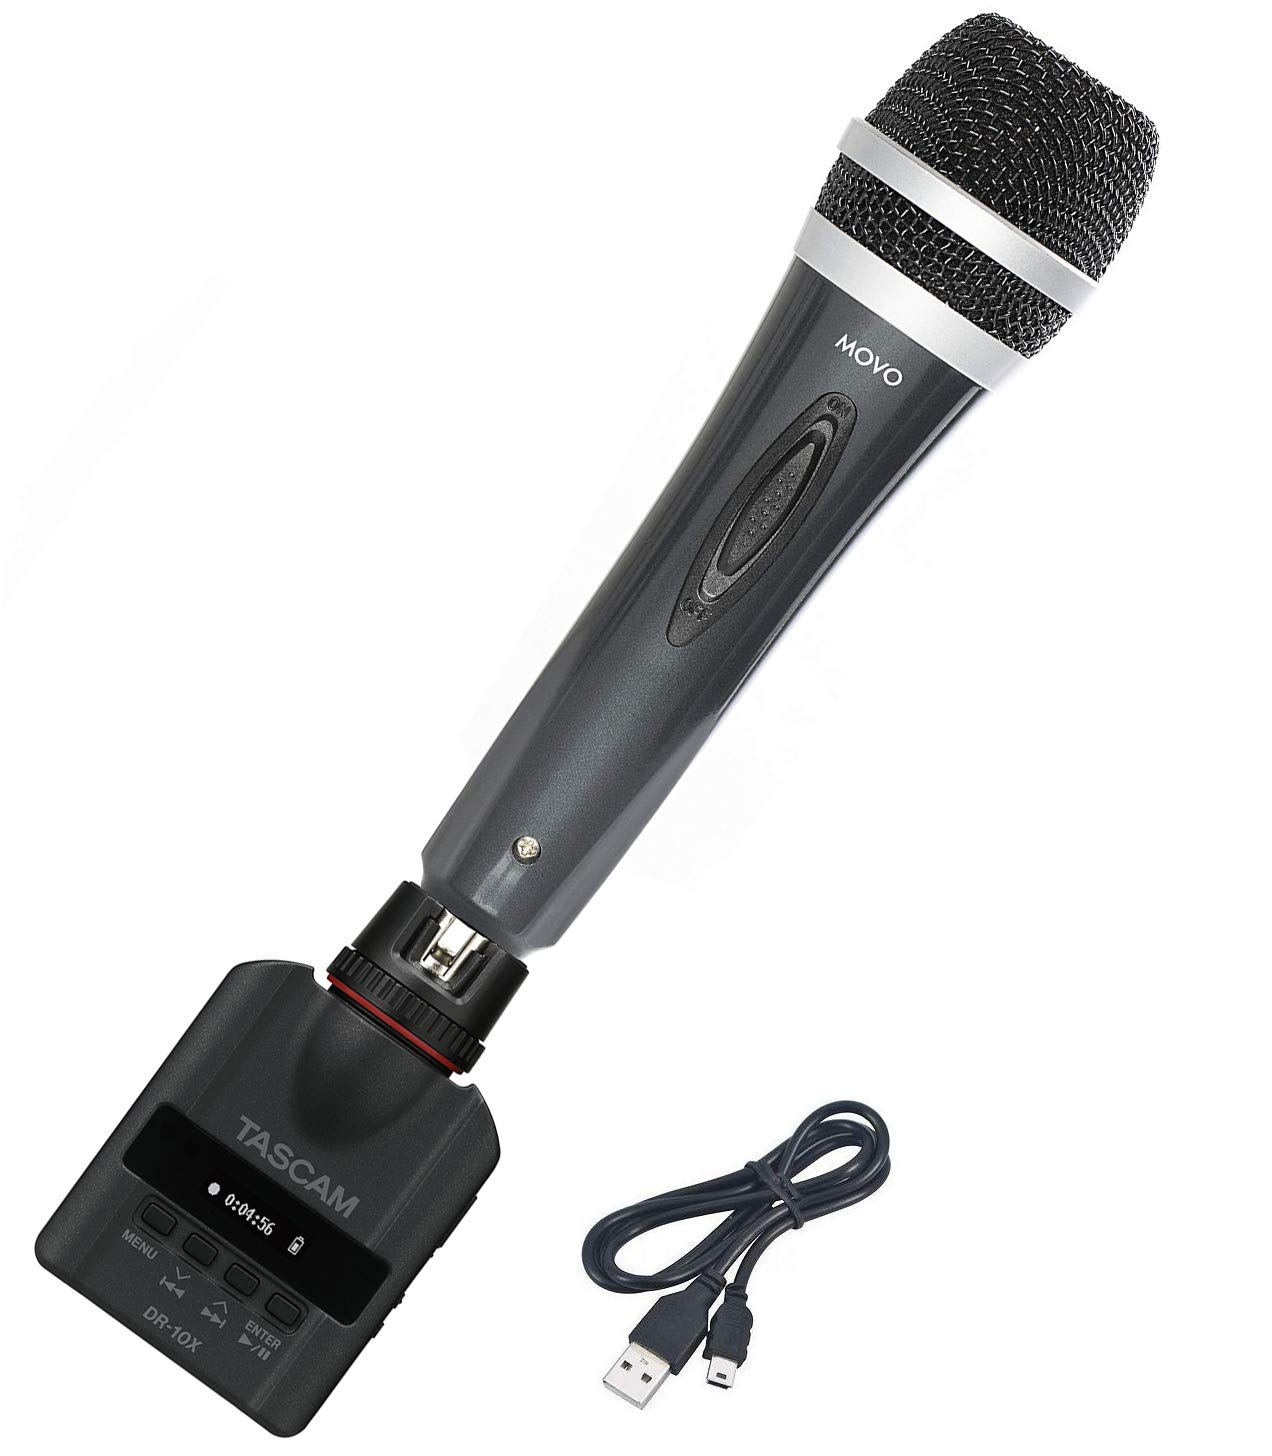 Tascam DR-10X Plug-On Micro Linear PCM Recorder Bundle with Movo Dynamic XLR Cardioid Handheld Vocal Microphone